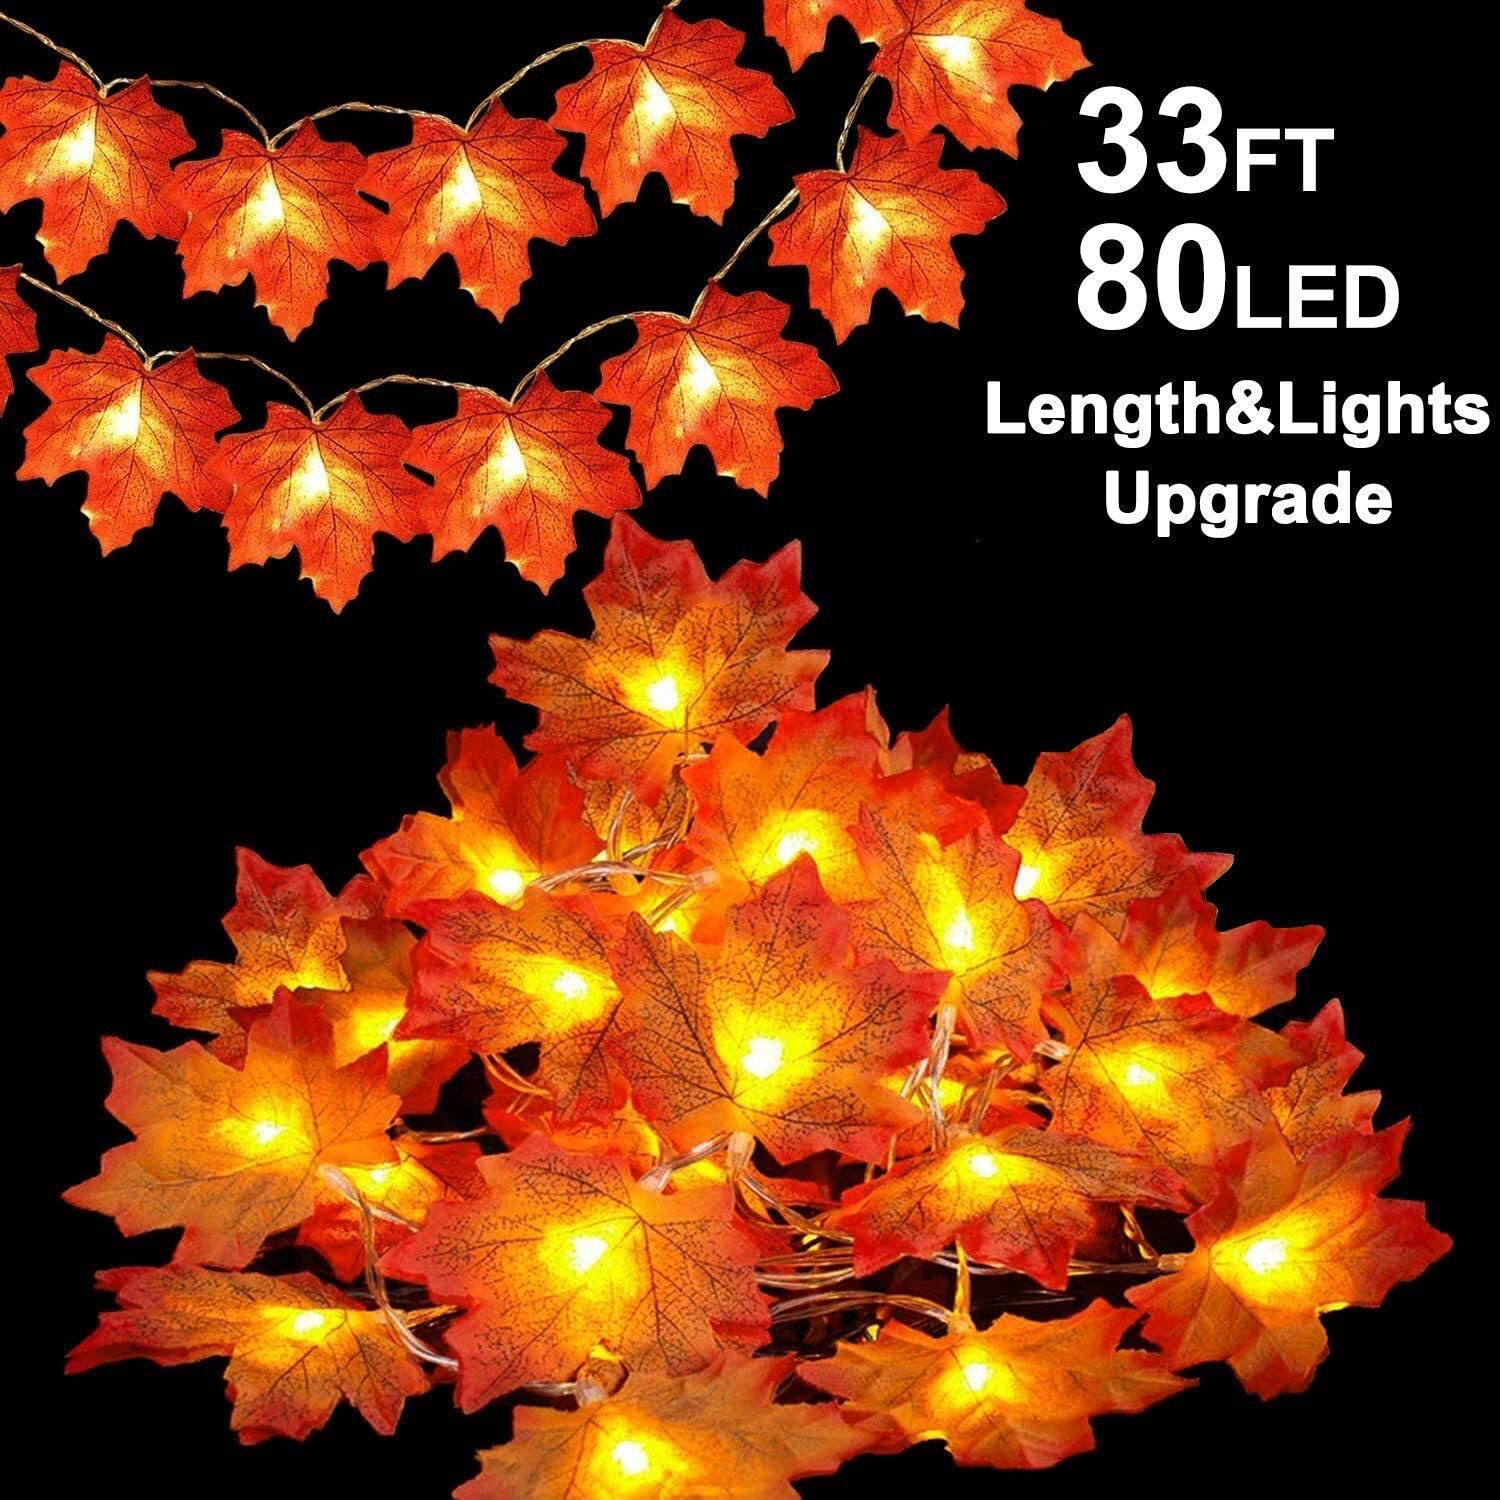 TURNMEON 33FT 80LED Upgrade Maples Leaves String Lights Fall Garland Battery Operated for Autumns Fall Halloween Thanksgivings Wedding Decor for Home Party Indoor Outdoor Decorations (Warm White)